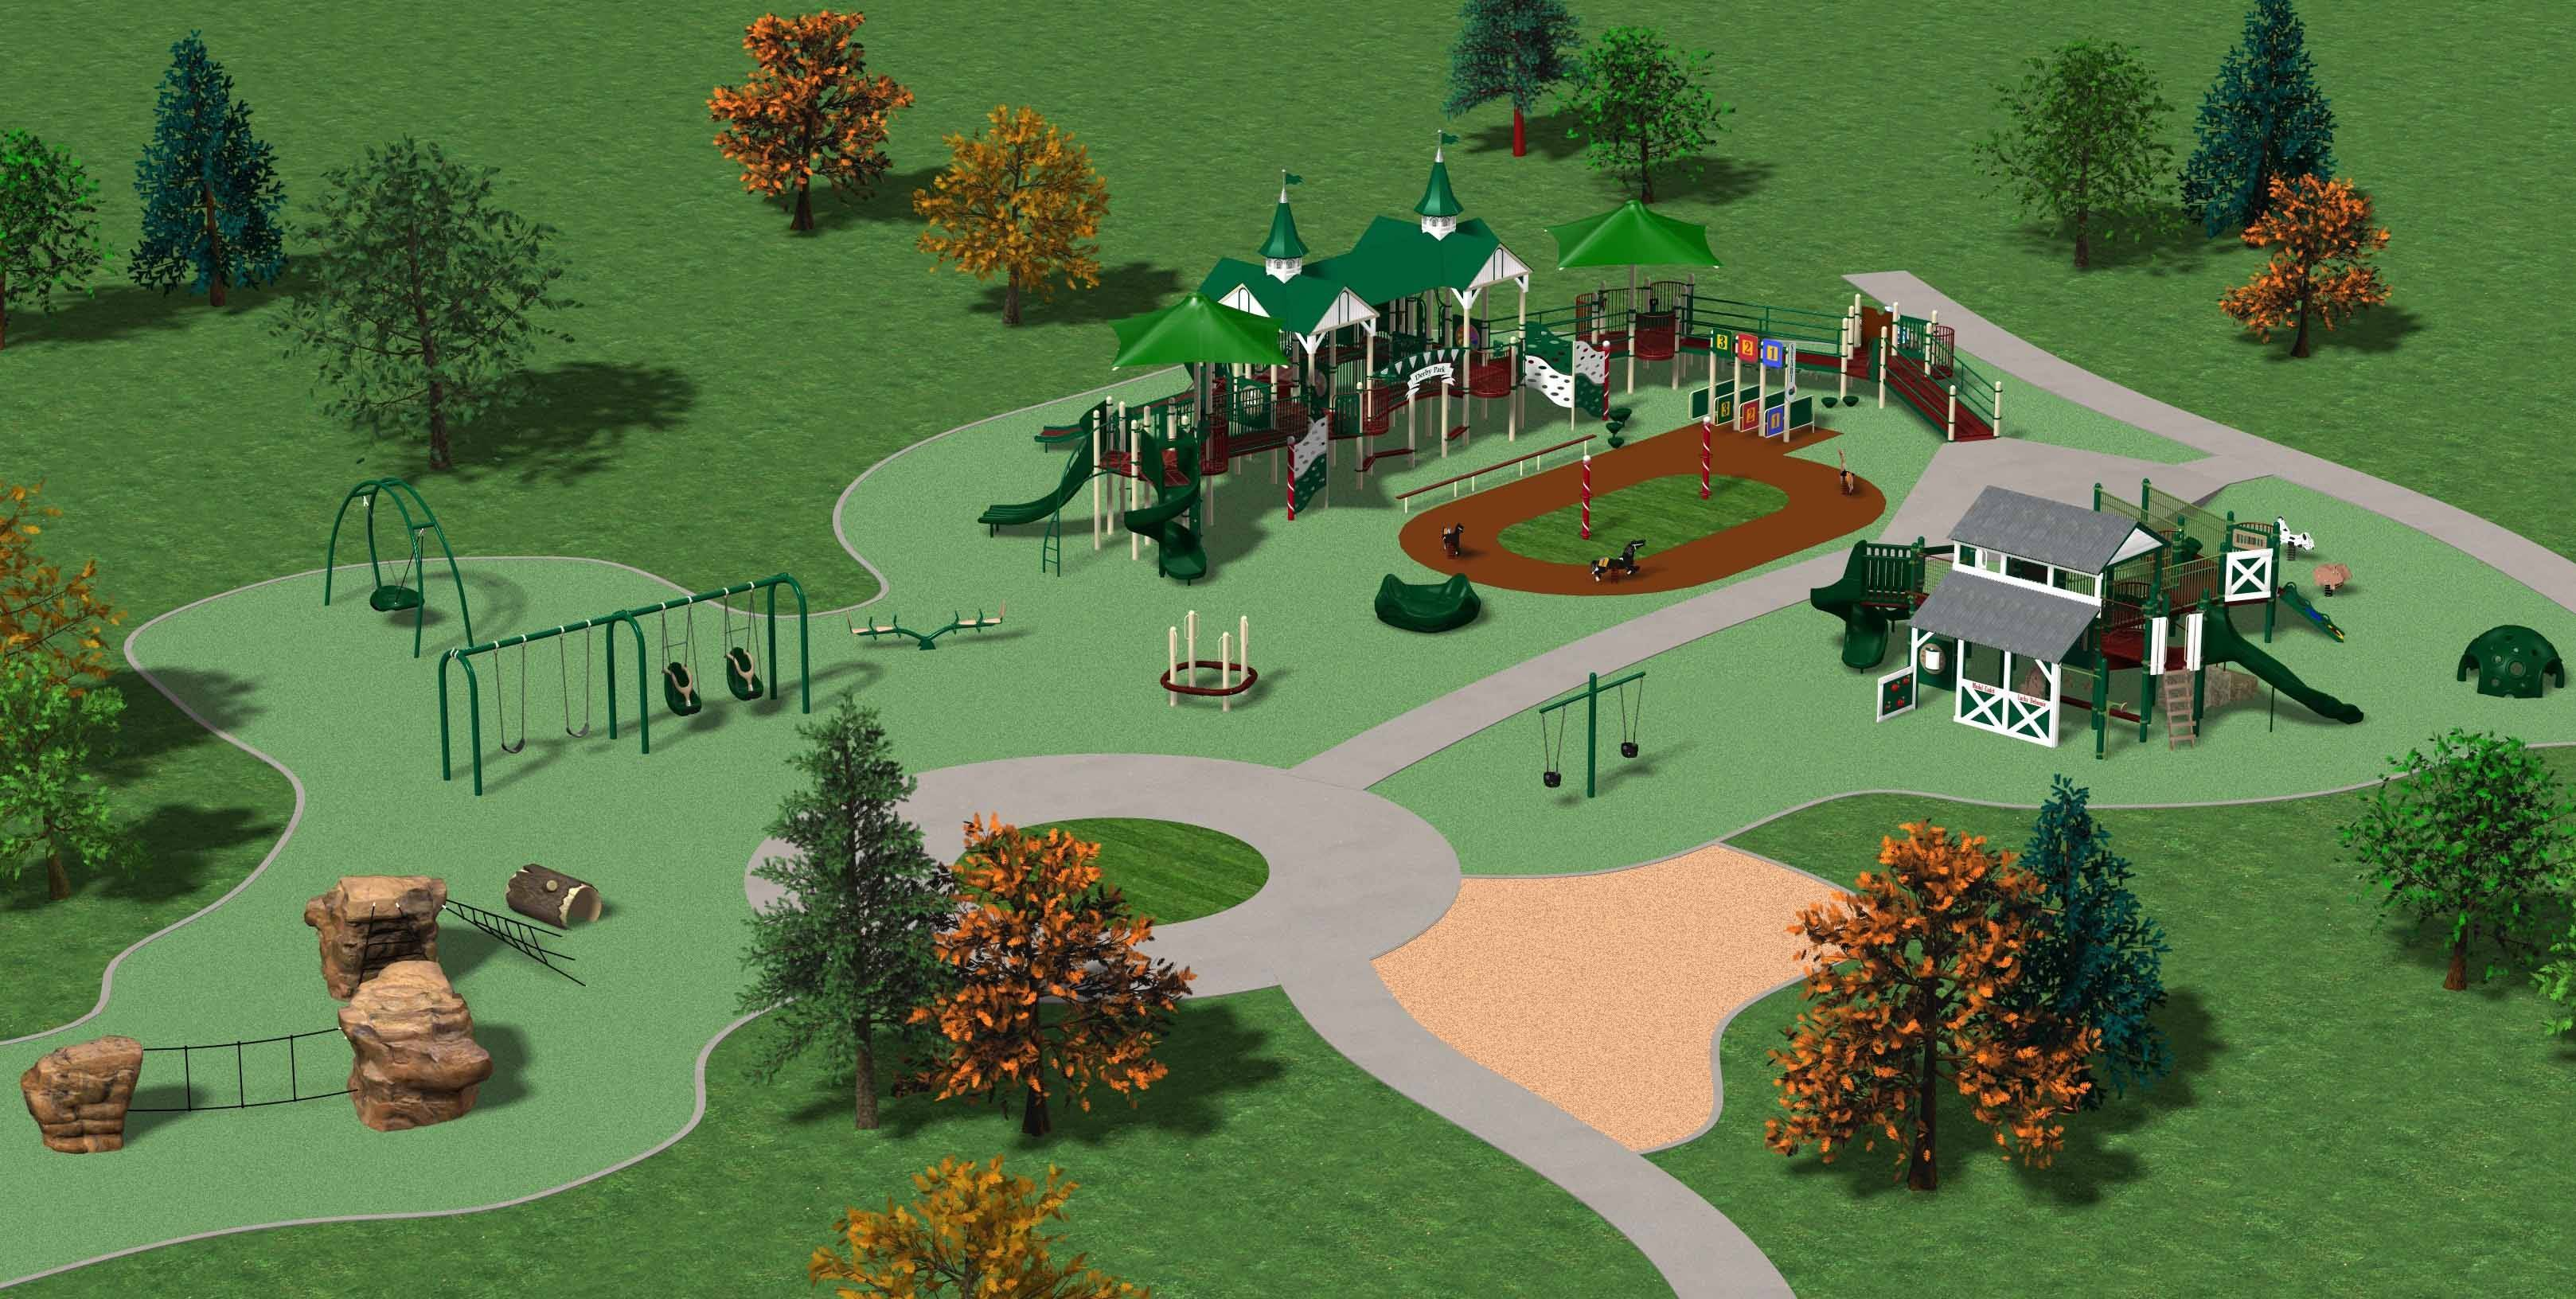 Construction has begun on the first phase of the Play for All playgrounds and gardens in Wheaton. Organizers are hoping the project, which is intended to provide recreation for everyone, regardless of disabilities, will open in the fall.